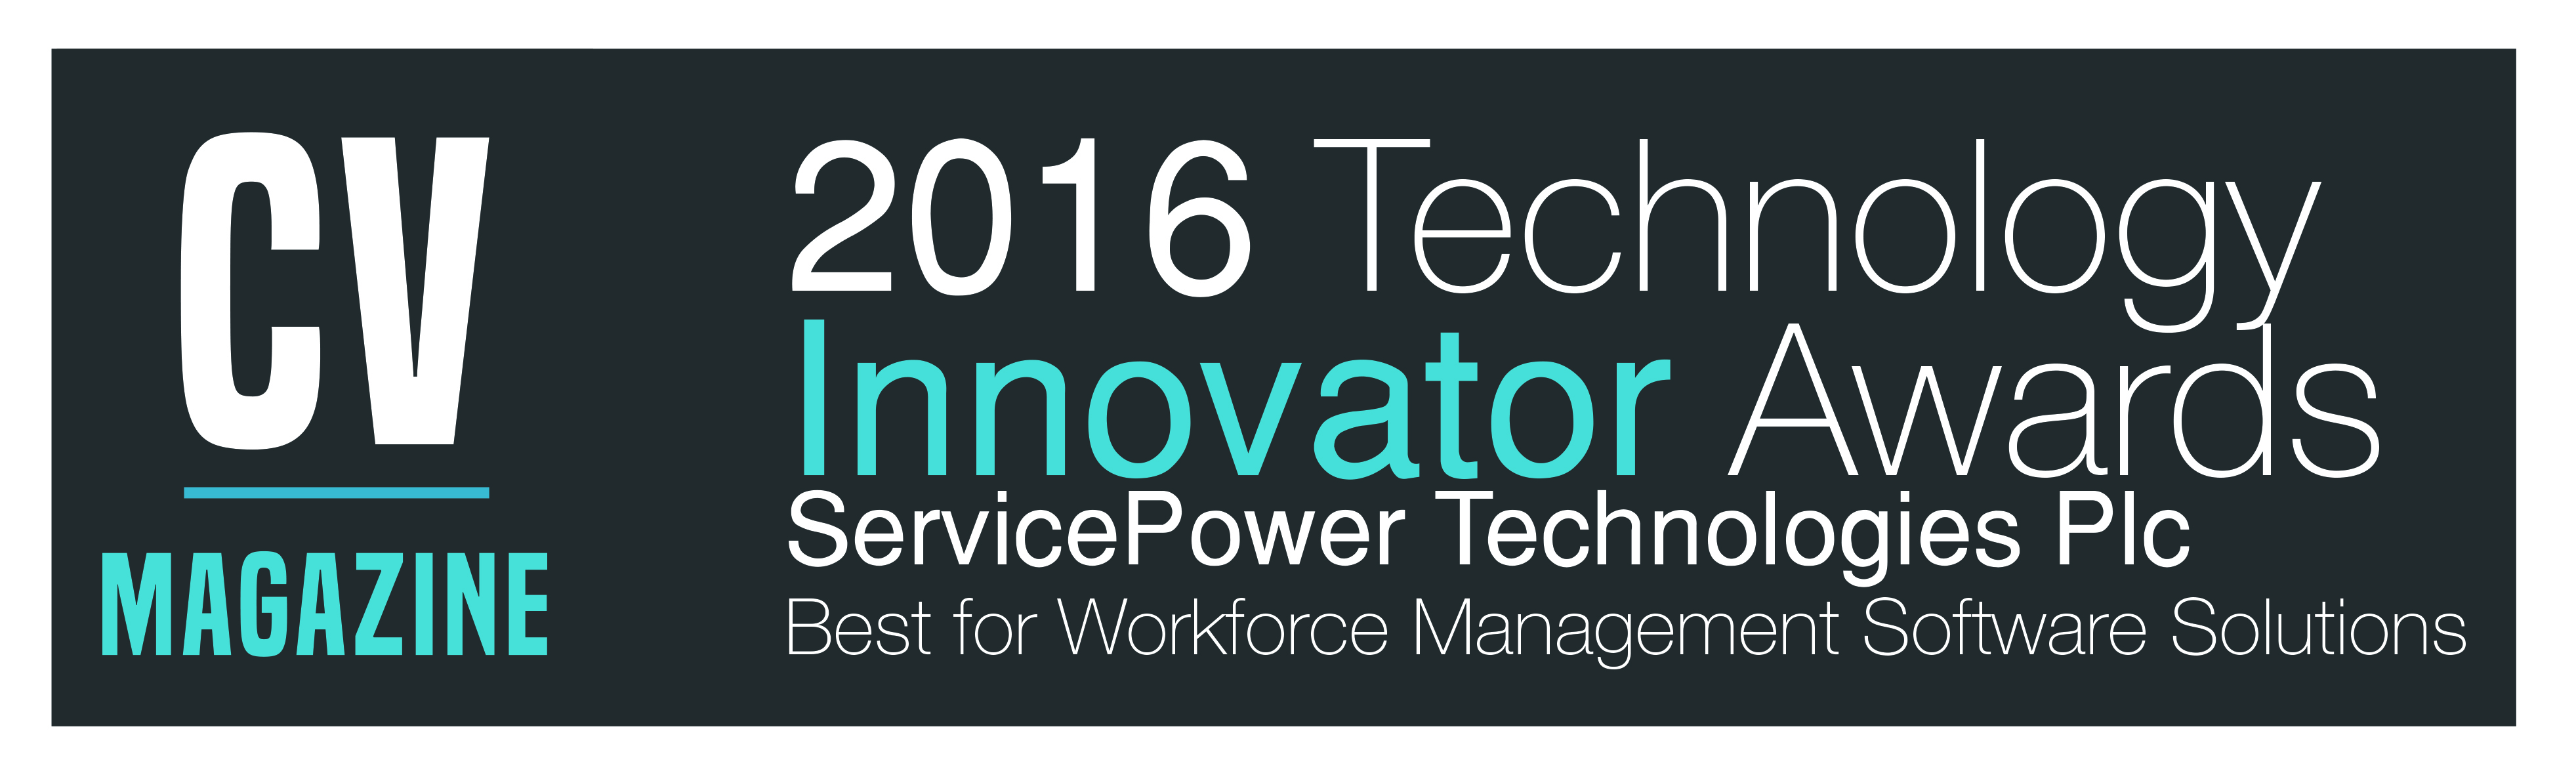 Corporate Vision 2016 Technology Innovator Awards Winner